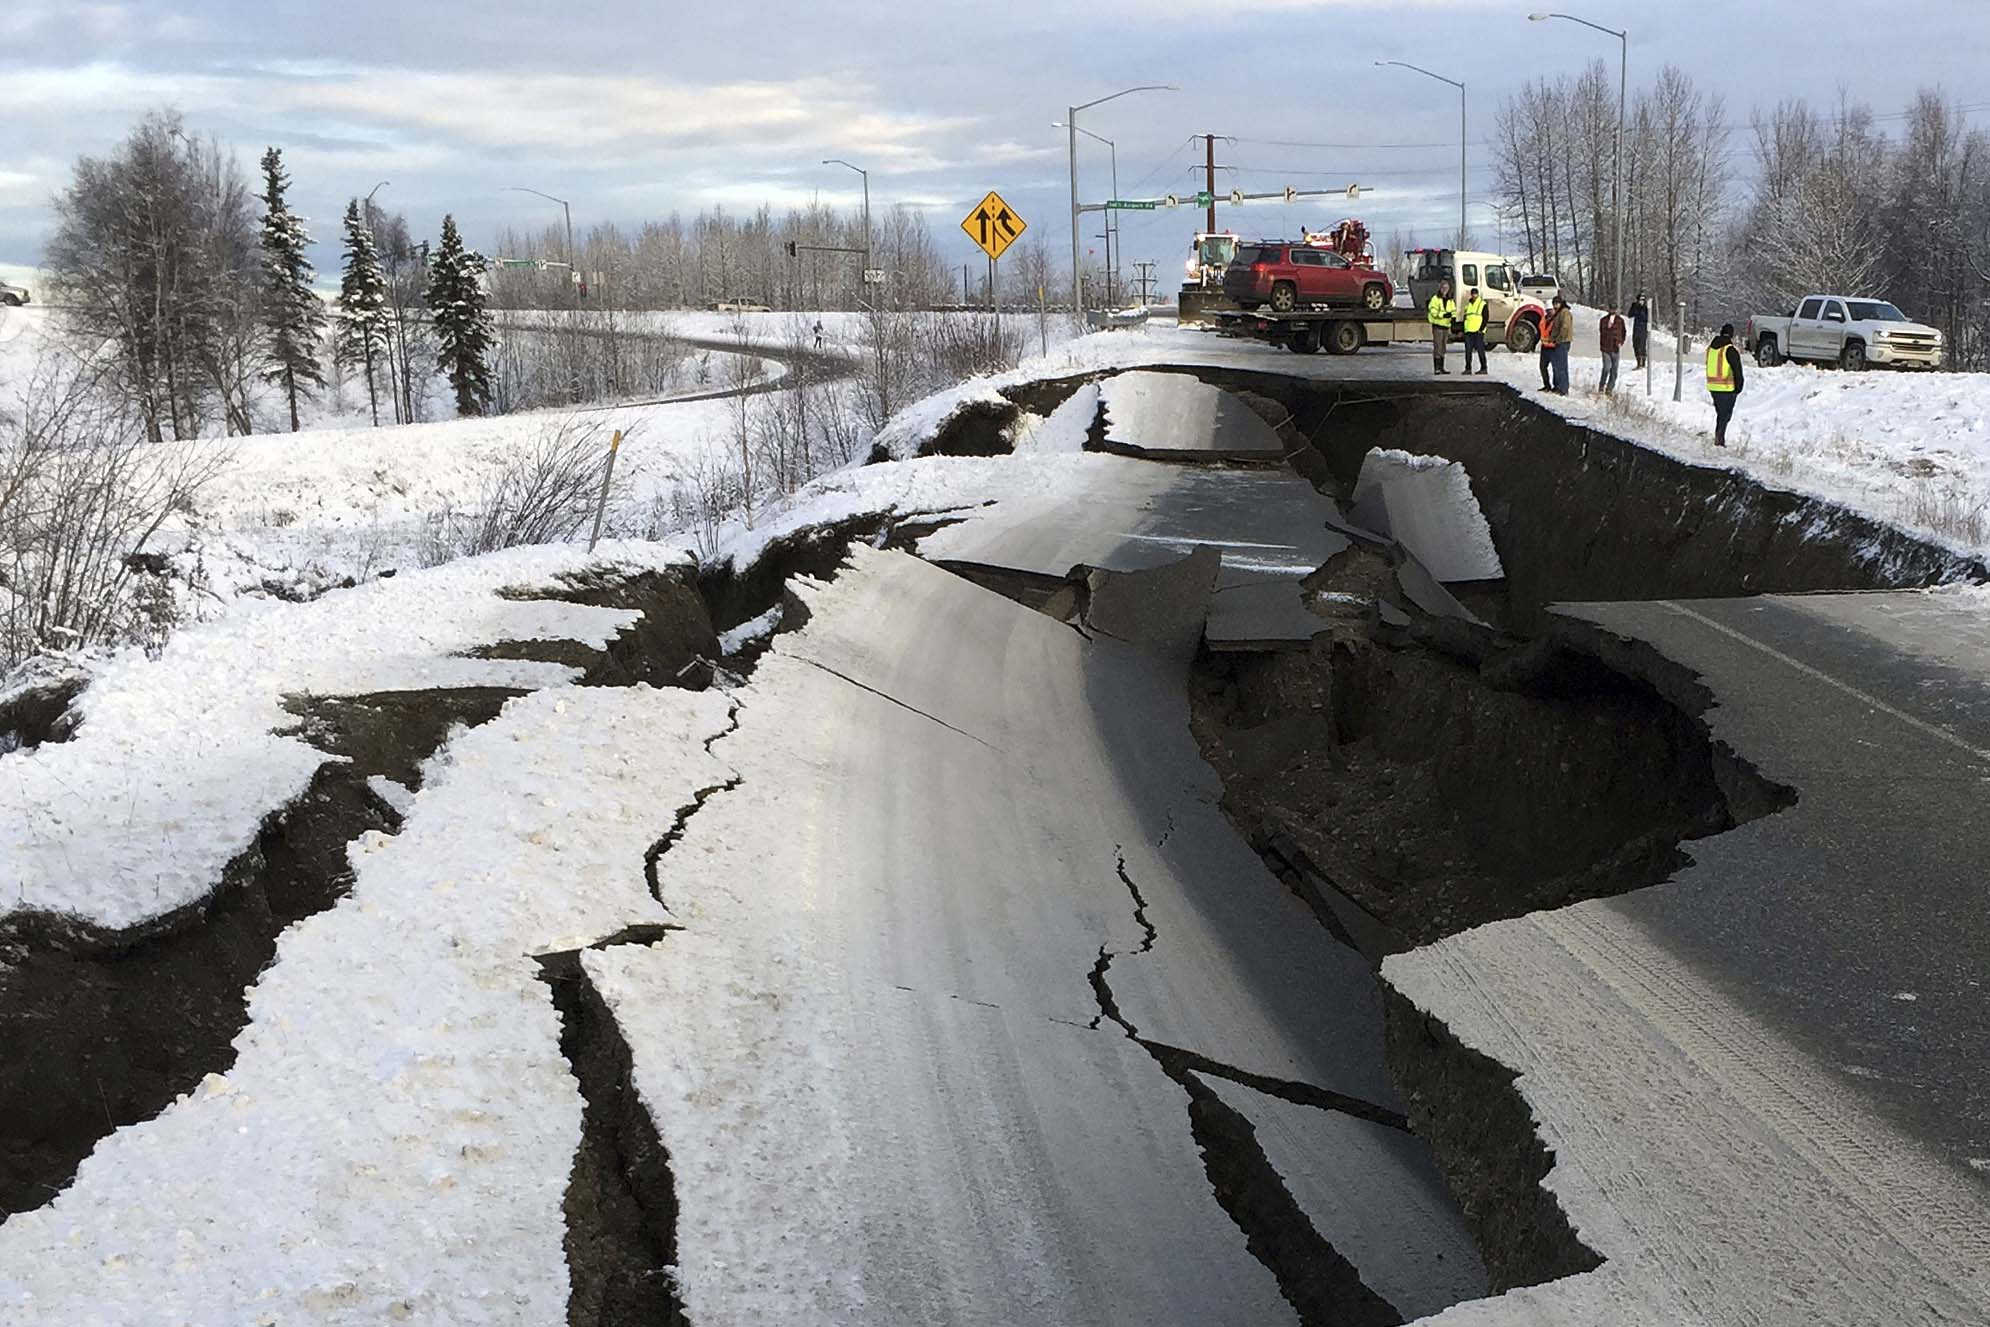 alaska earthquake today - photo #6